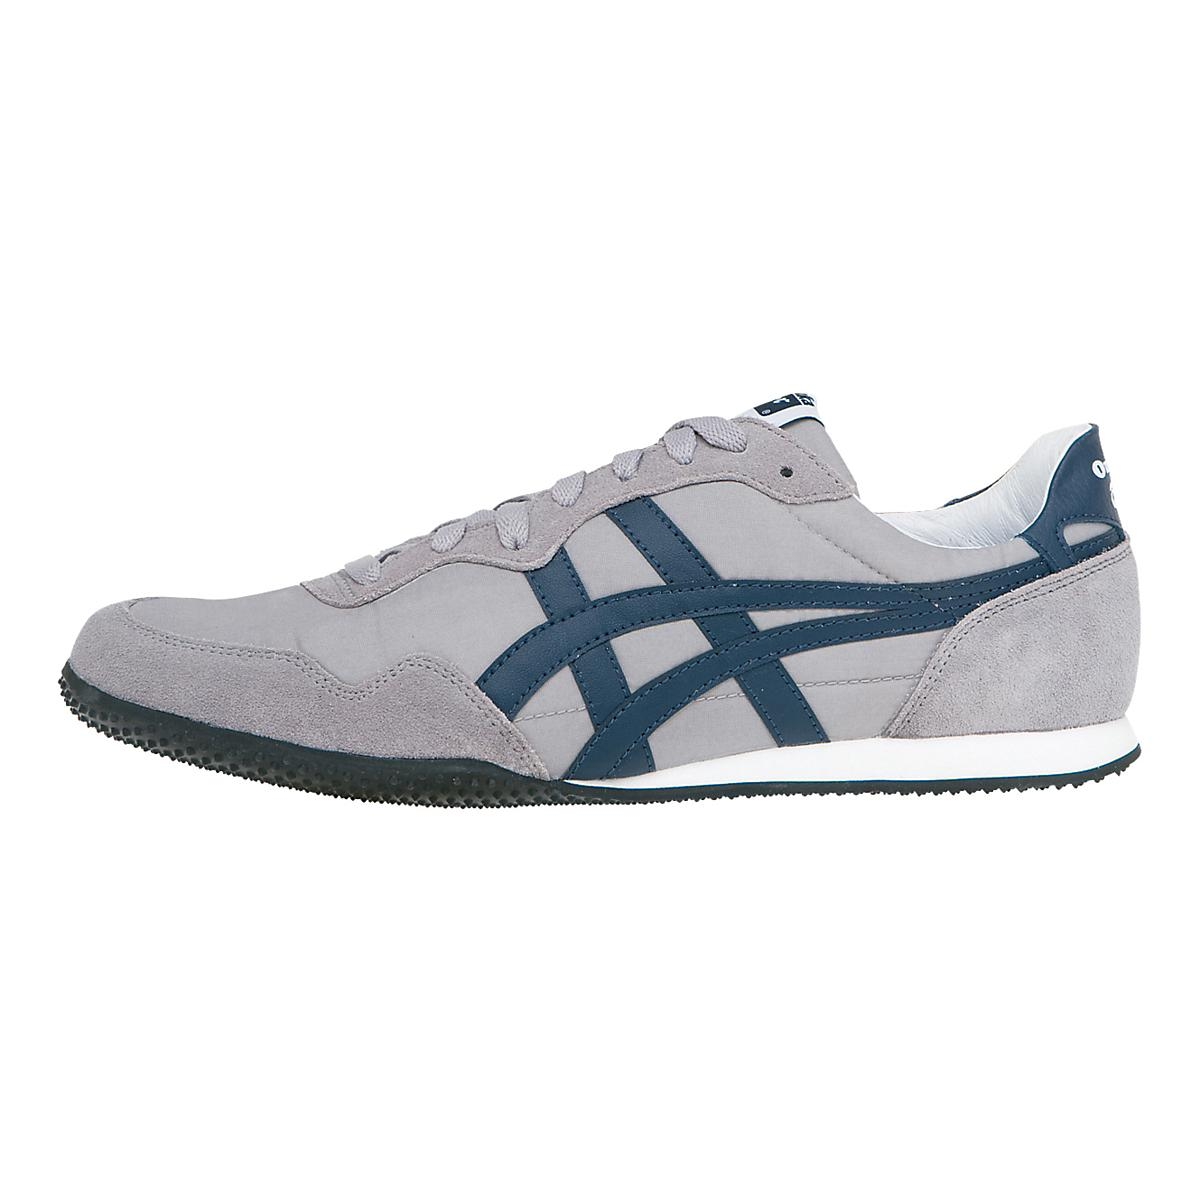 08a66146a97c ASICS Serrano Casual Shoe at Road Runner Sports